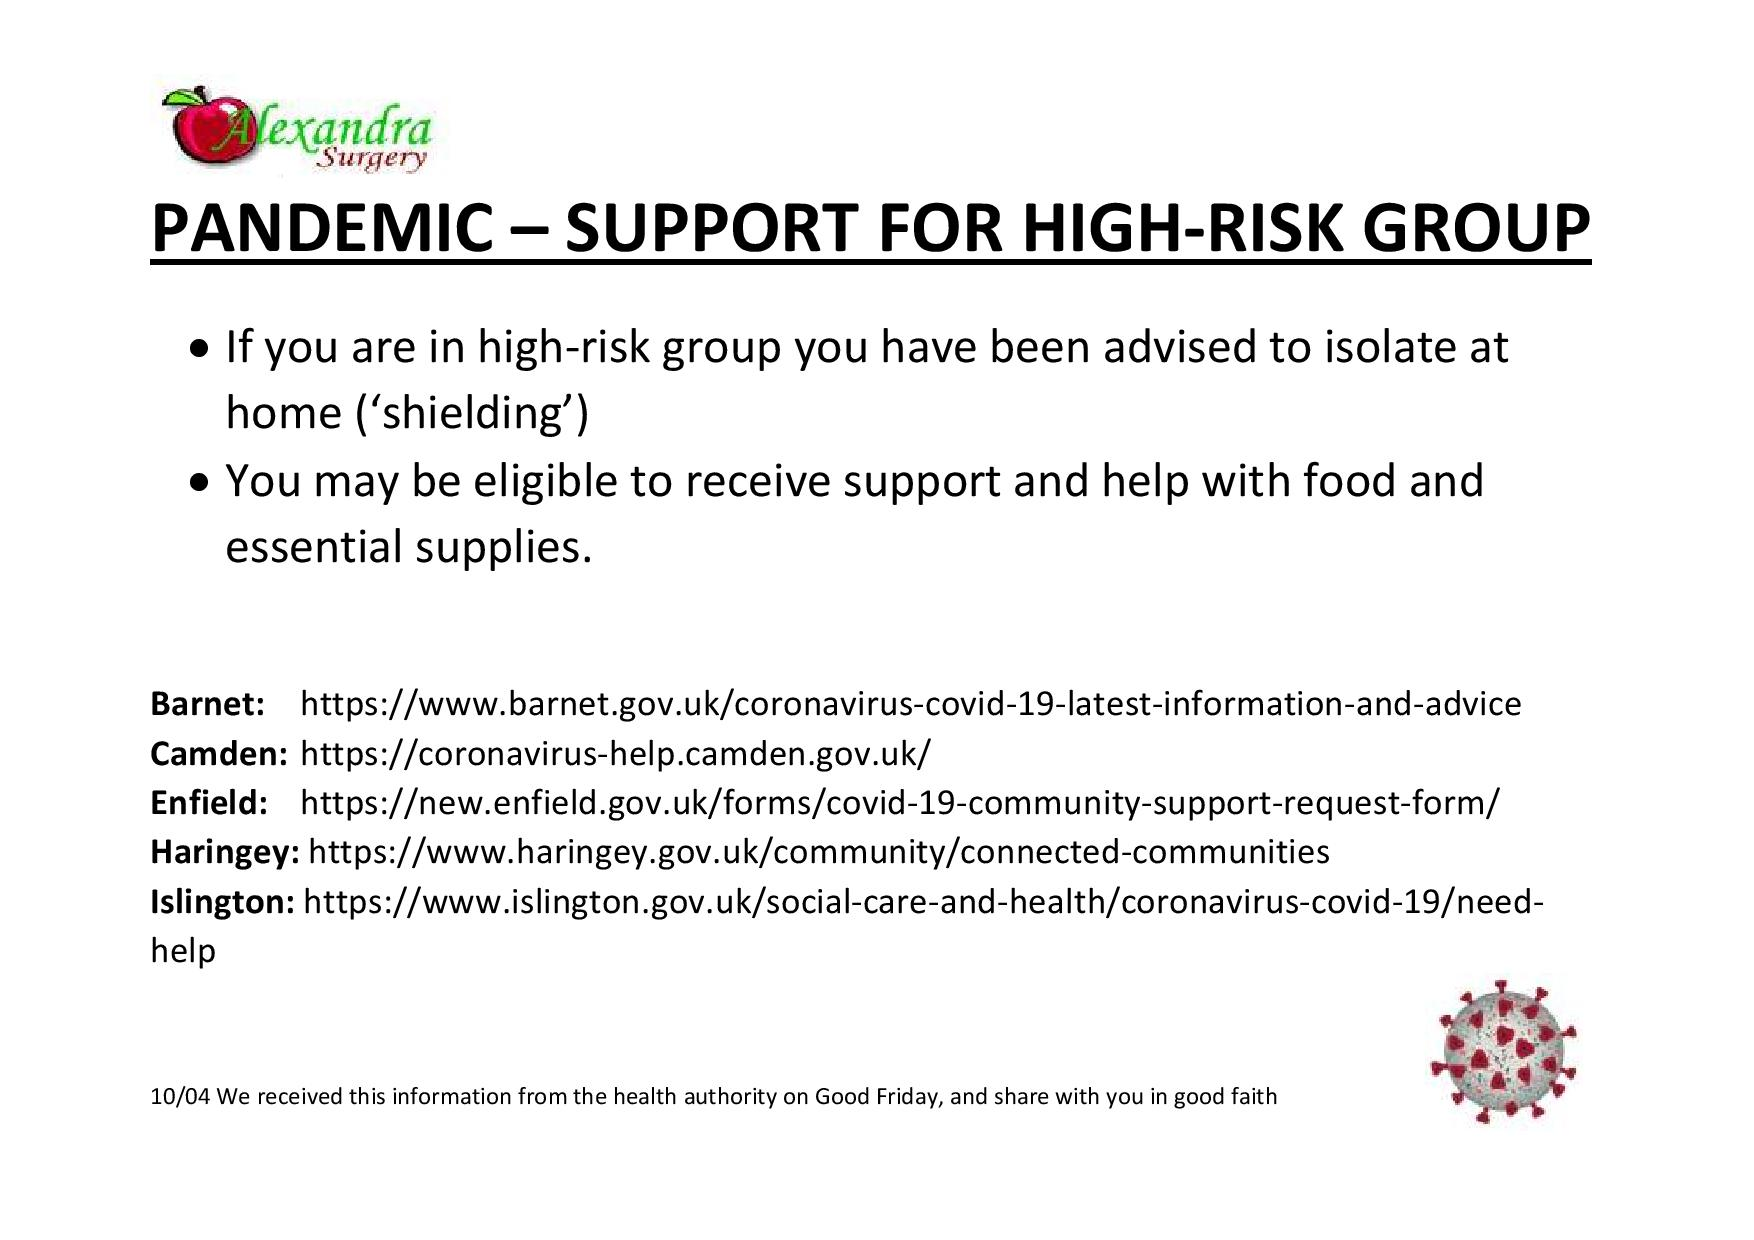 High risk group eligible for help